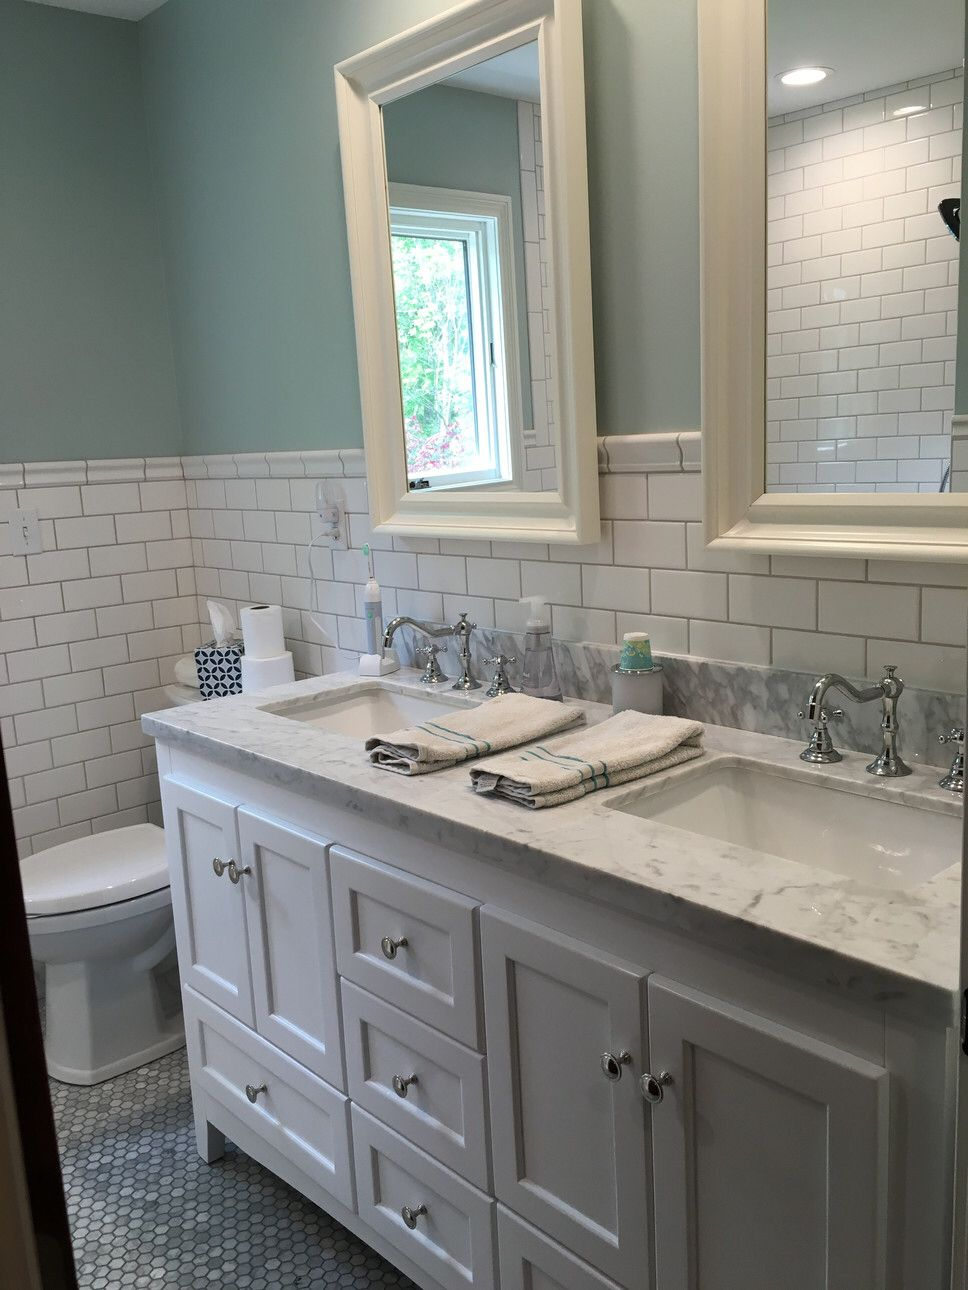 Features: -Faucet Handles Are Labeled Hot And Cold. -Does